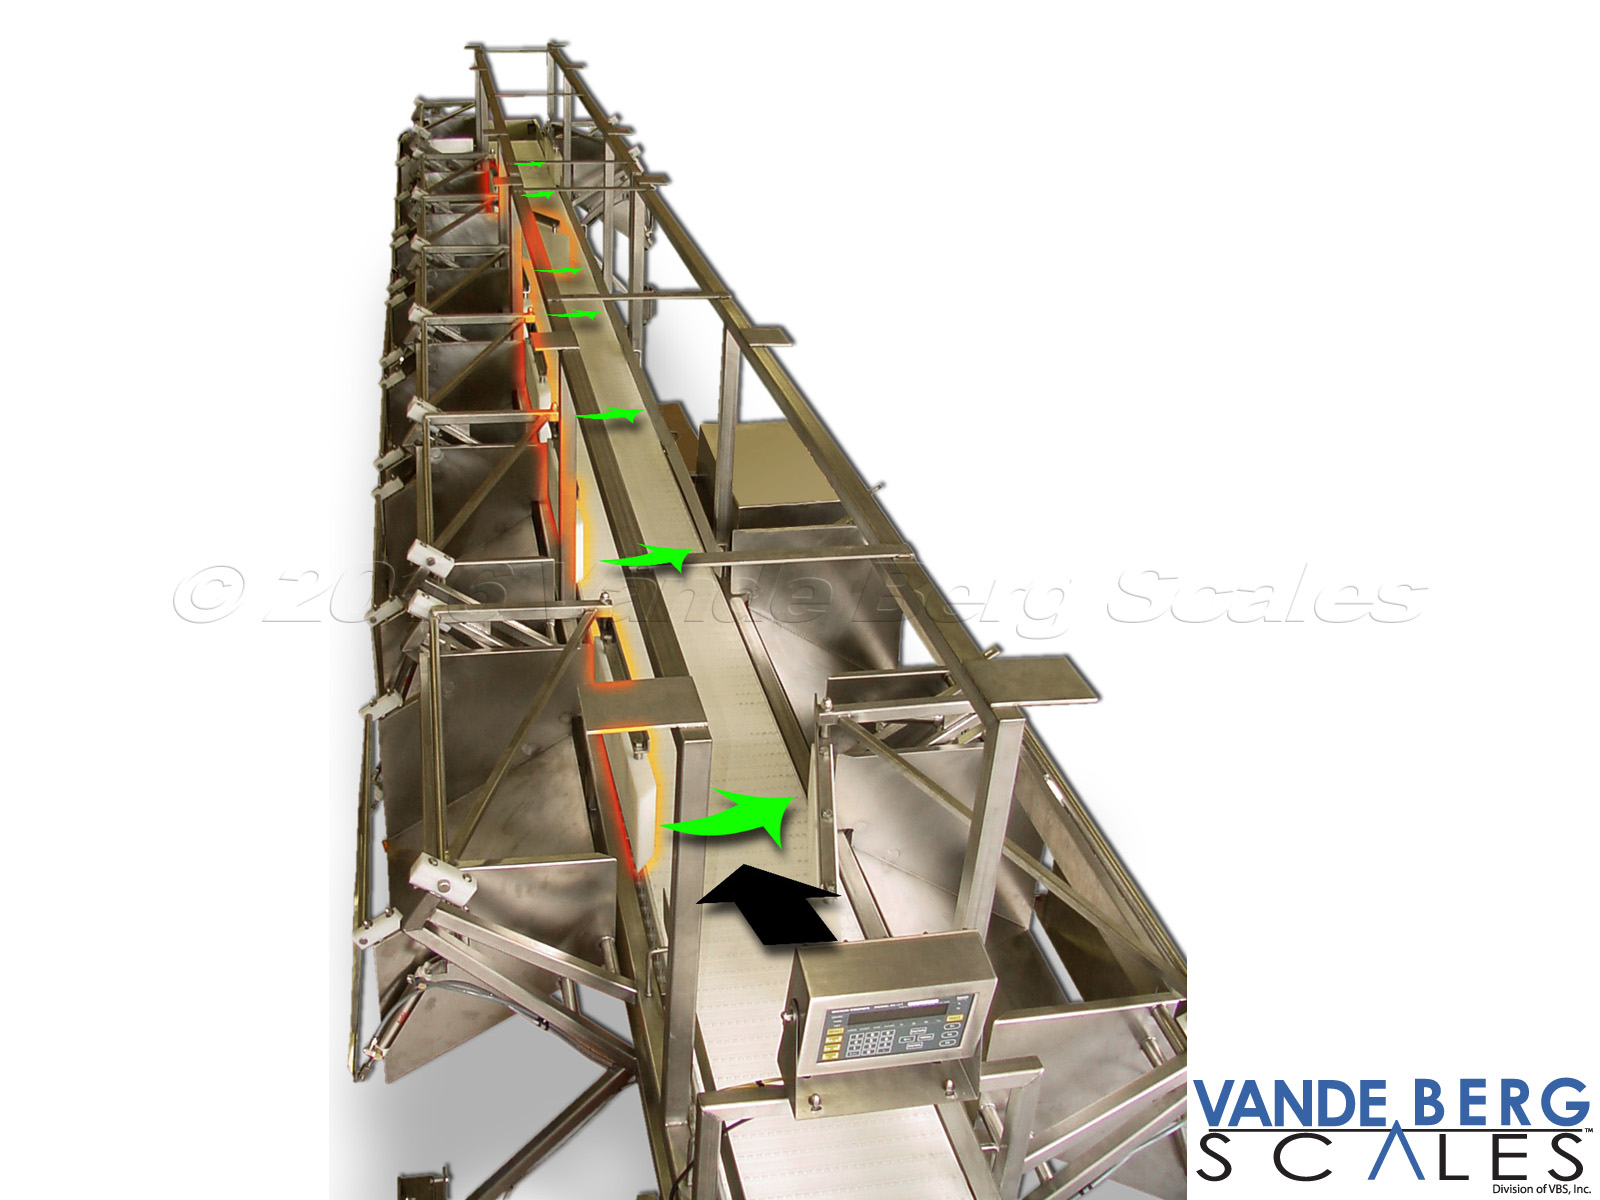 Ham Sorting System - Overhead mounting design allows combos to be placed underneath. When a predetermined number of products falls into the combos, a gate will shut permitting the operator to replace the combo.